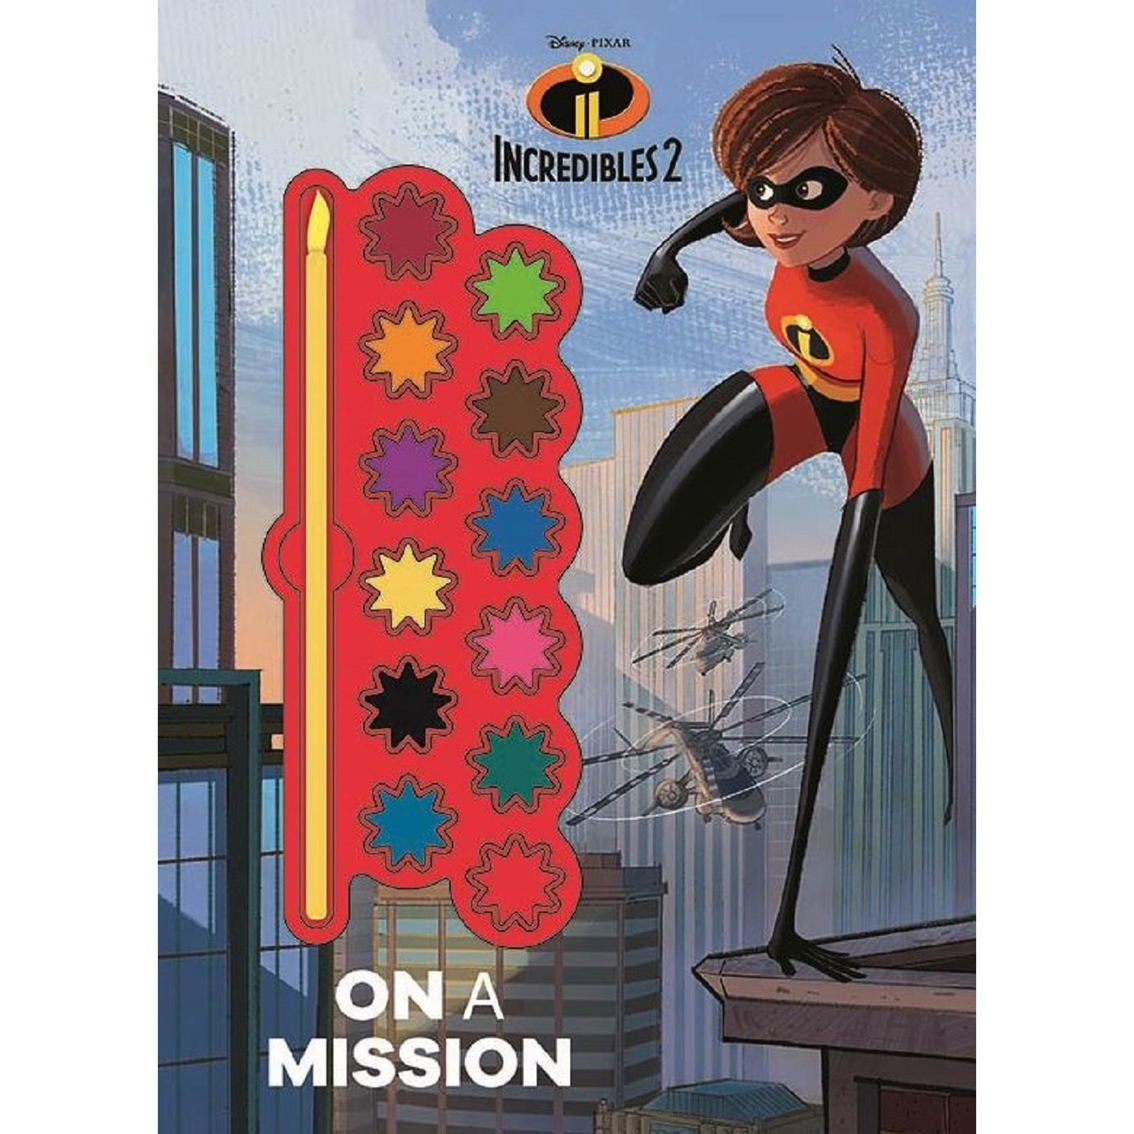 Disney Pixar Incredibles 2 On A Mission Painting Book  57352341d8612